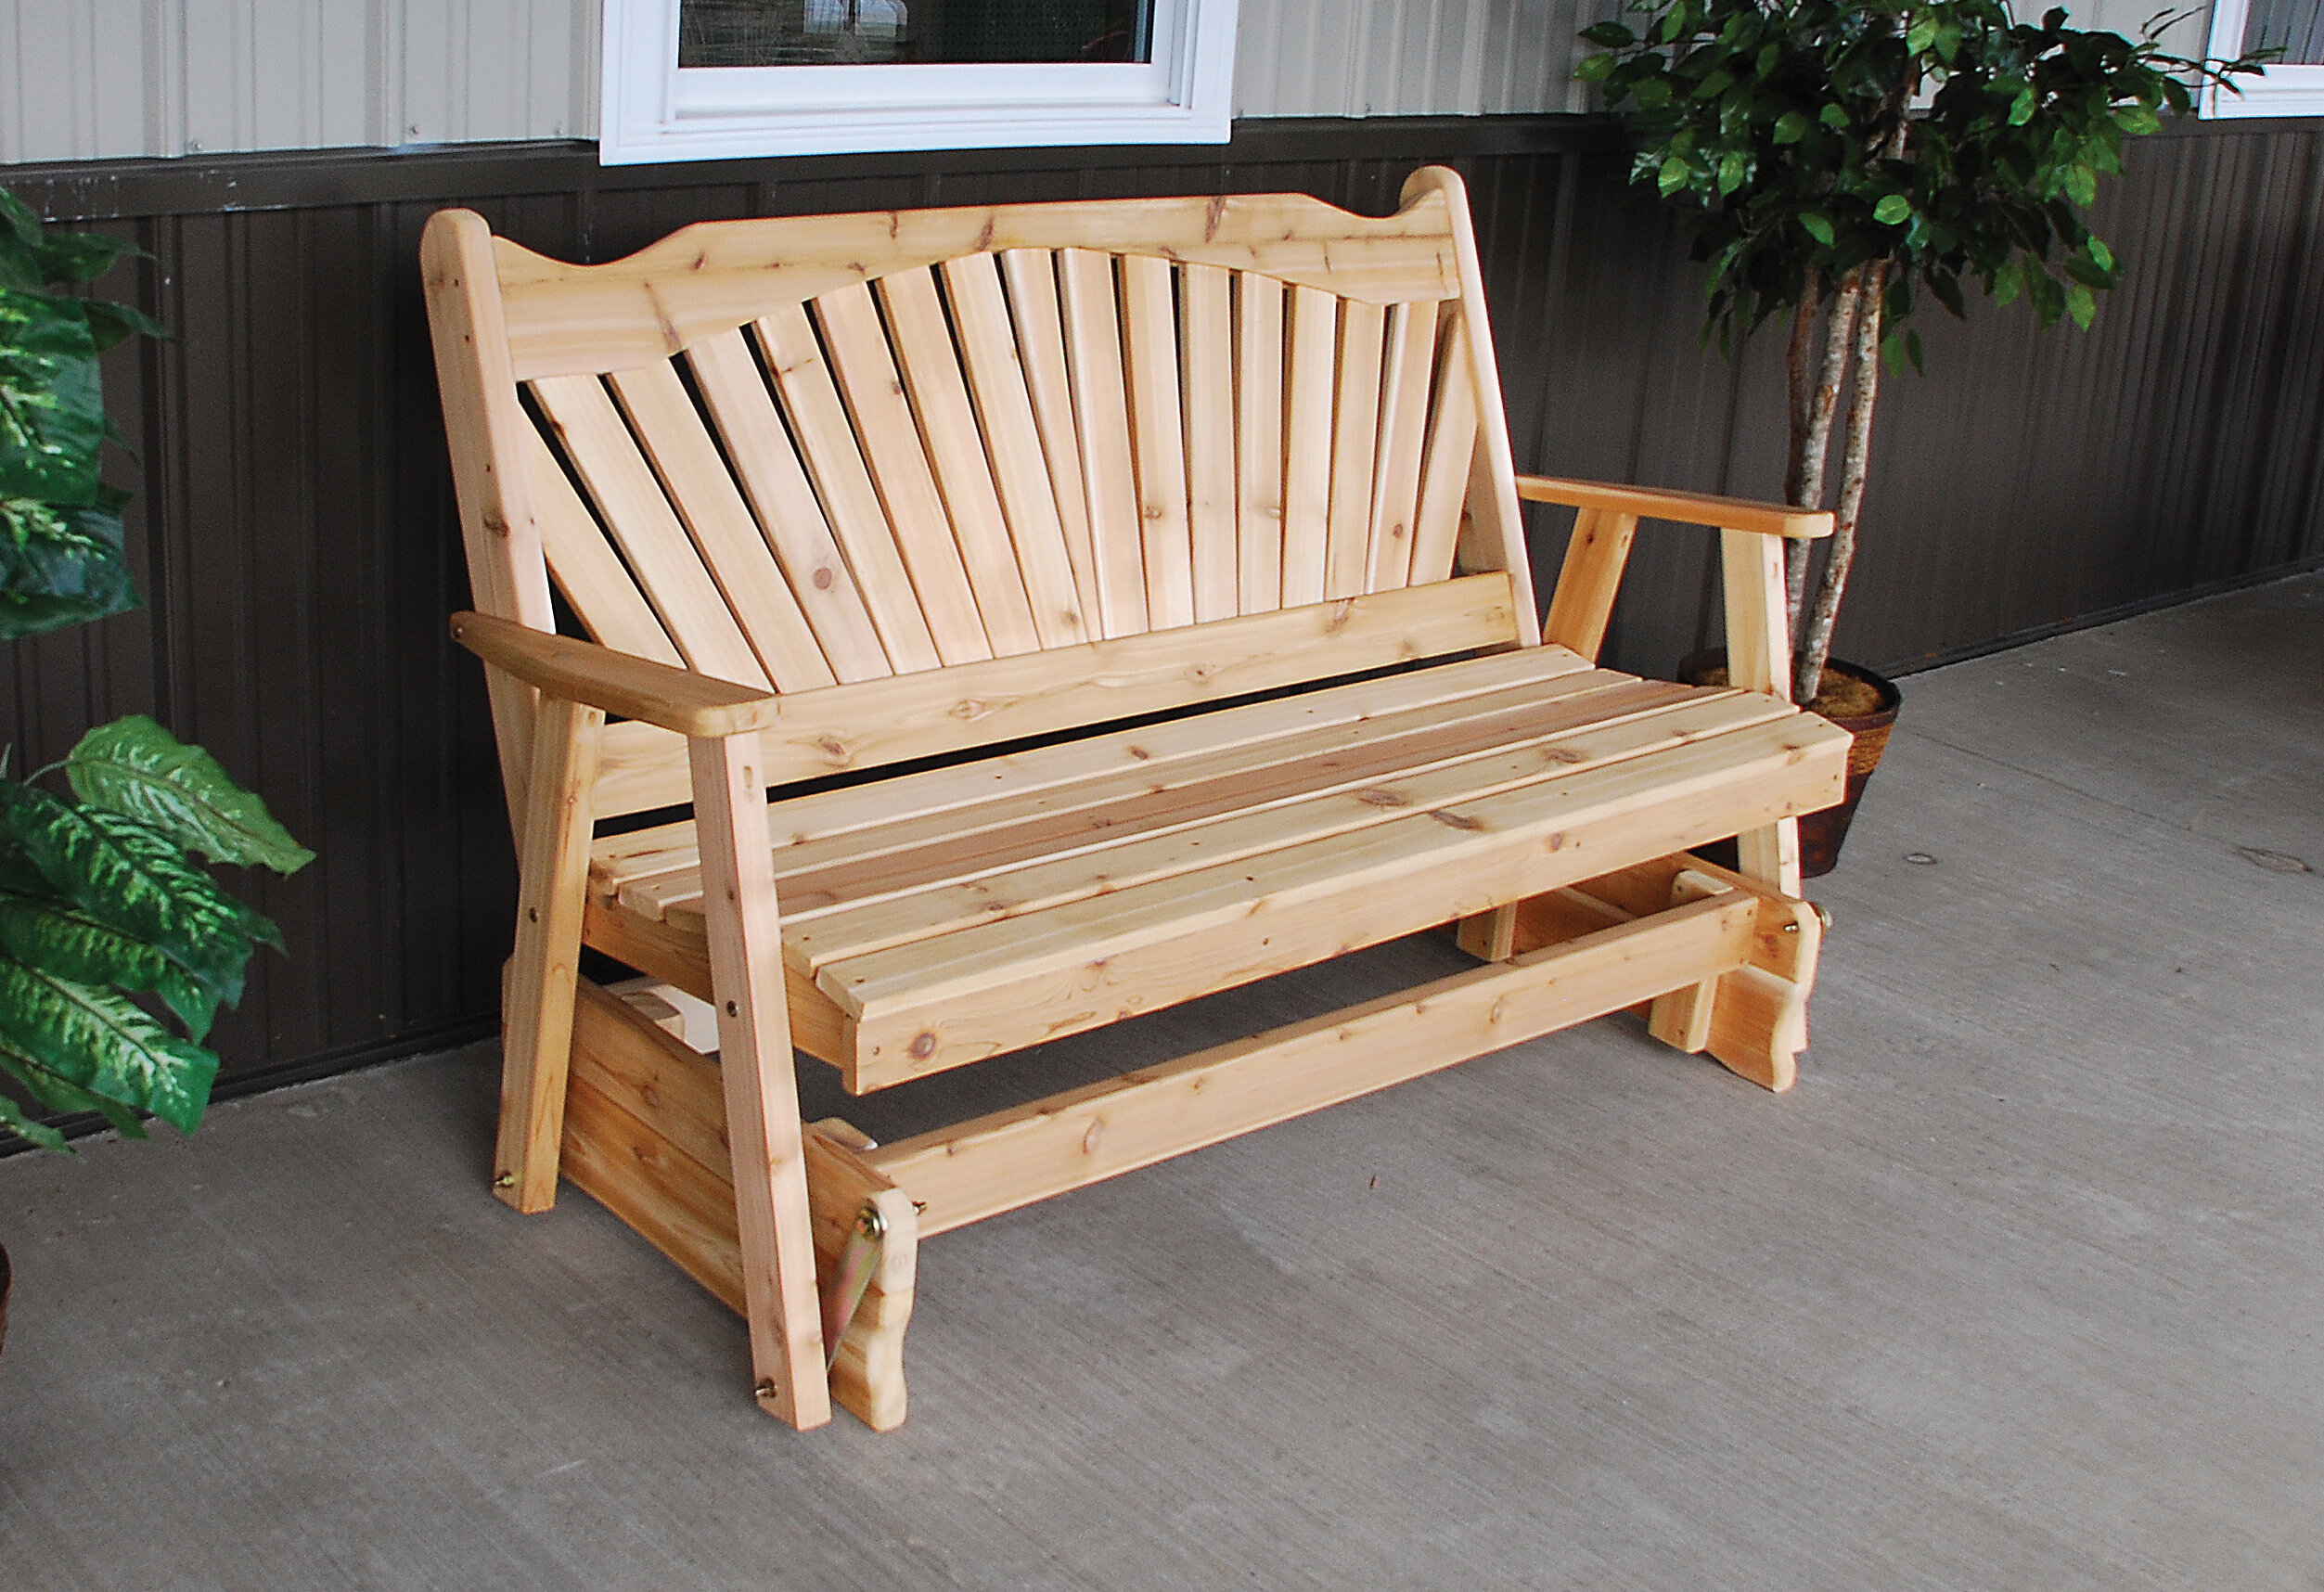 Millwood Pines Gazaway Fanback Glider Bench | Wayfair Within Cedar Colonial Style Glider Benches (View 12 of 25)